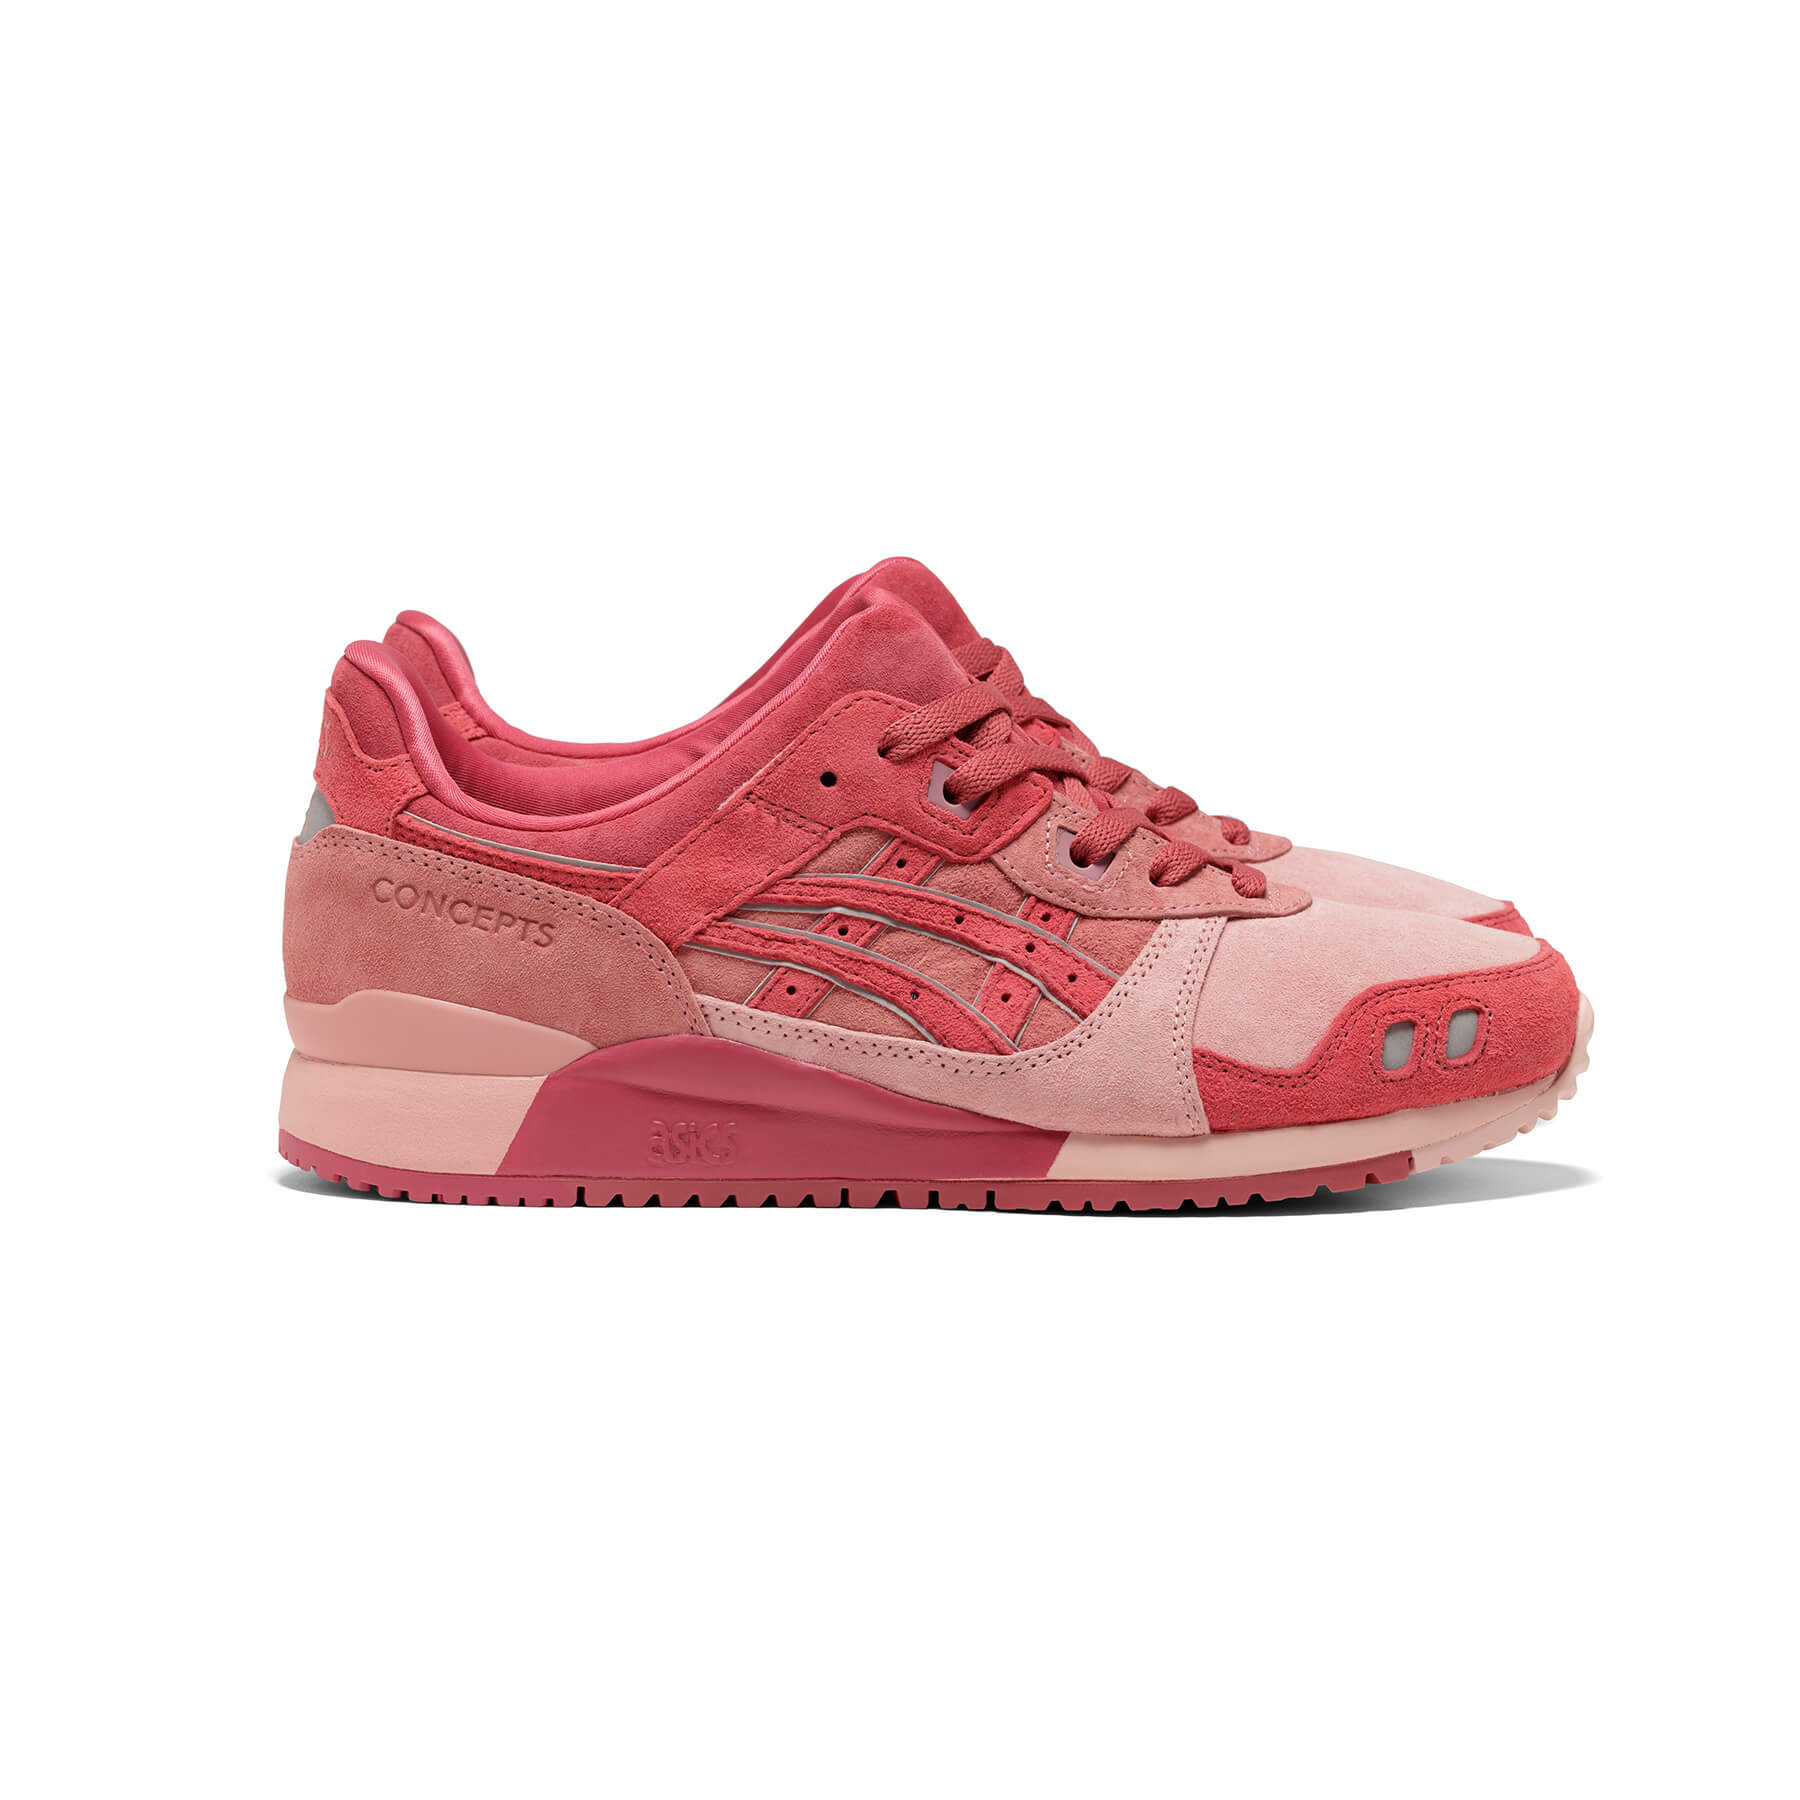 """ASICS SportStyle x Concepts - GEL-LYTE III OG - """"Otoro"""" - 1203A121-700 - Coral Cloud /Pure Silver"""